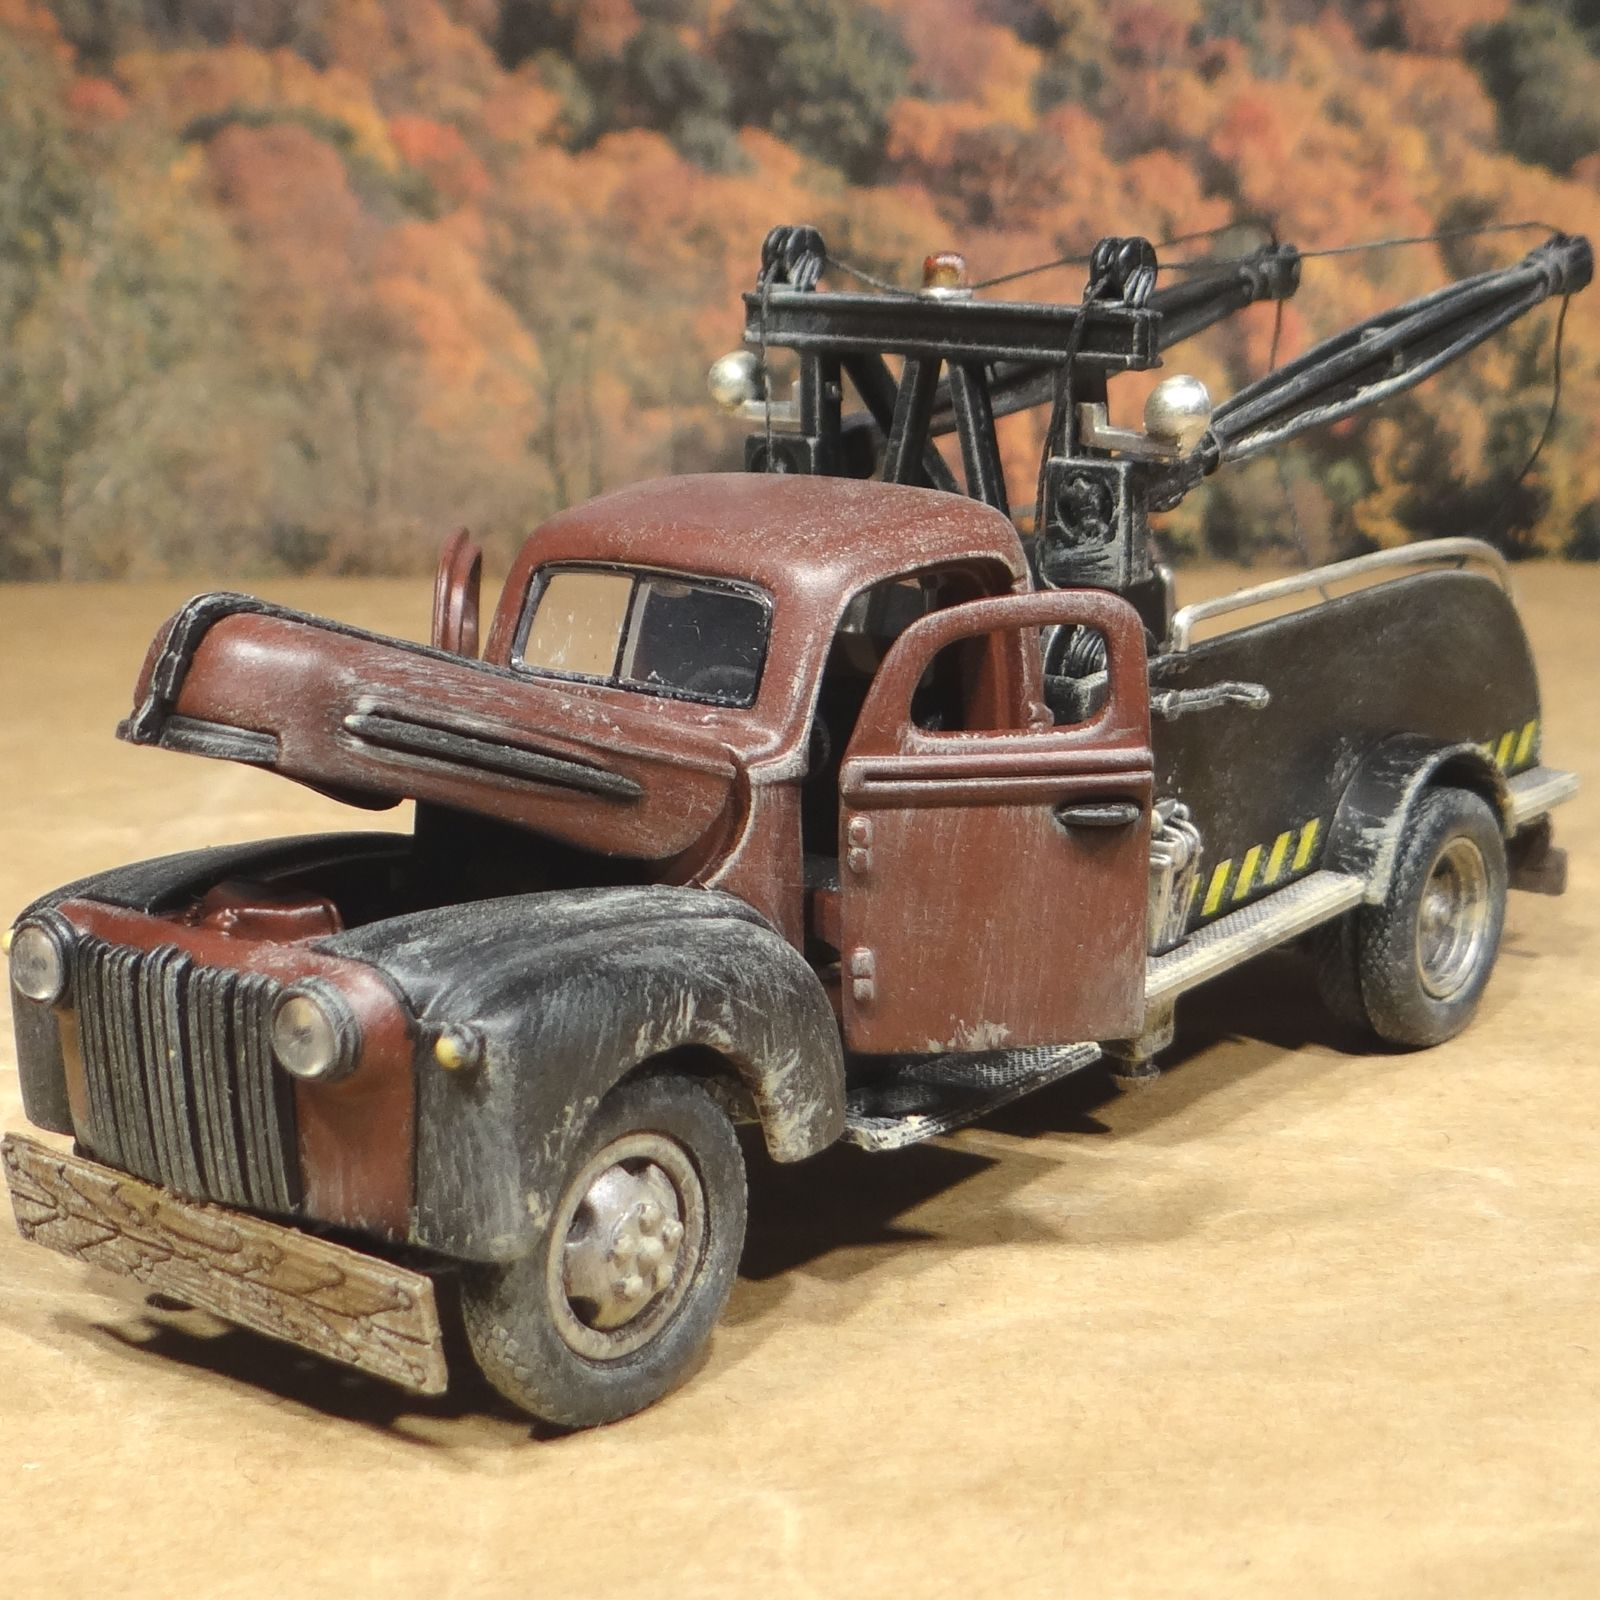 1942 Ford Tow Truck Brown Sale Now for a very limited time at